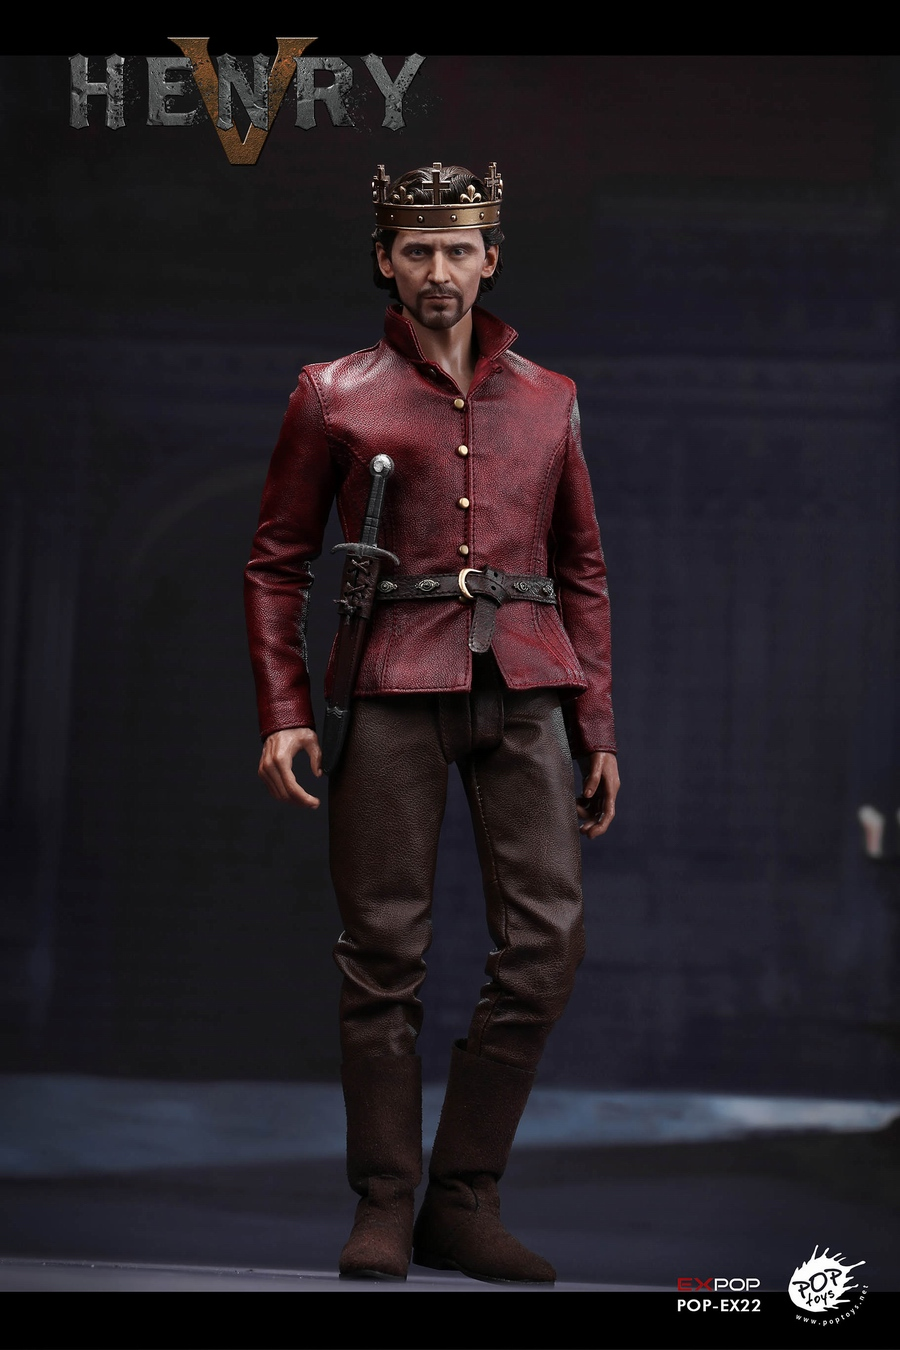 NEW PRODUCT: POPTOYS [WF2019 Shanghai Conference Edition]: 1/6 King of England - Henry V [The Throne Edition] POP-EX22 17591710